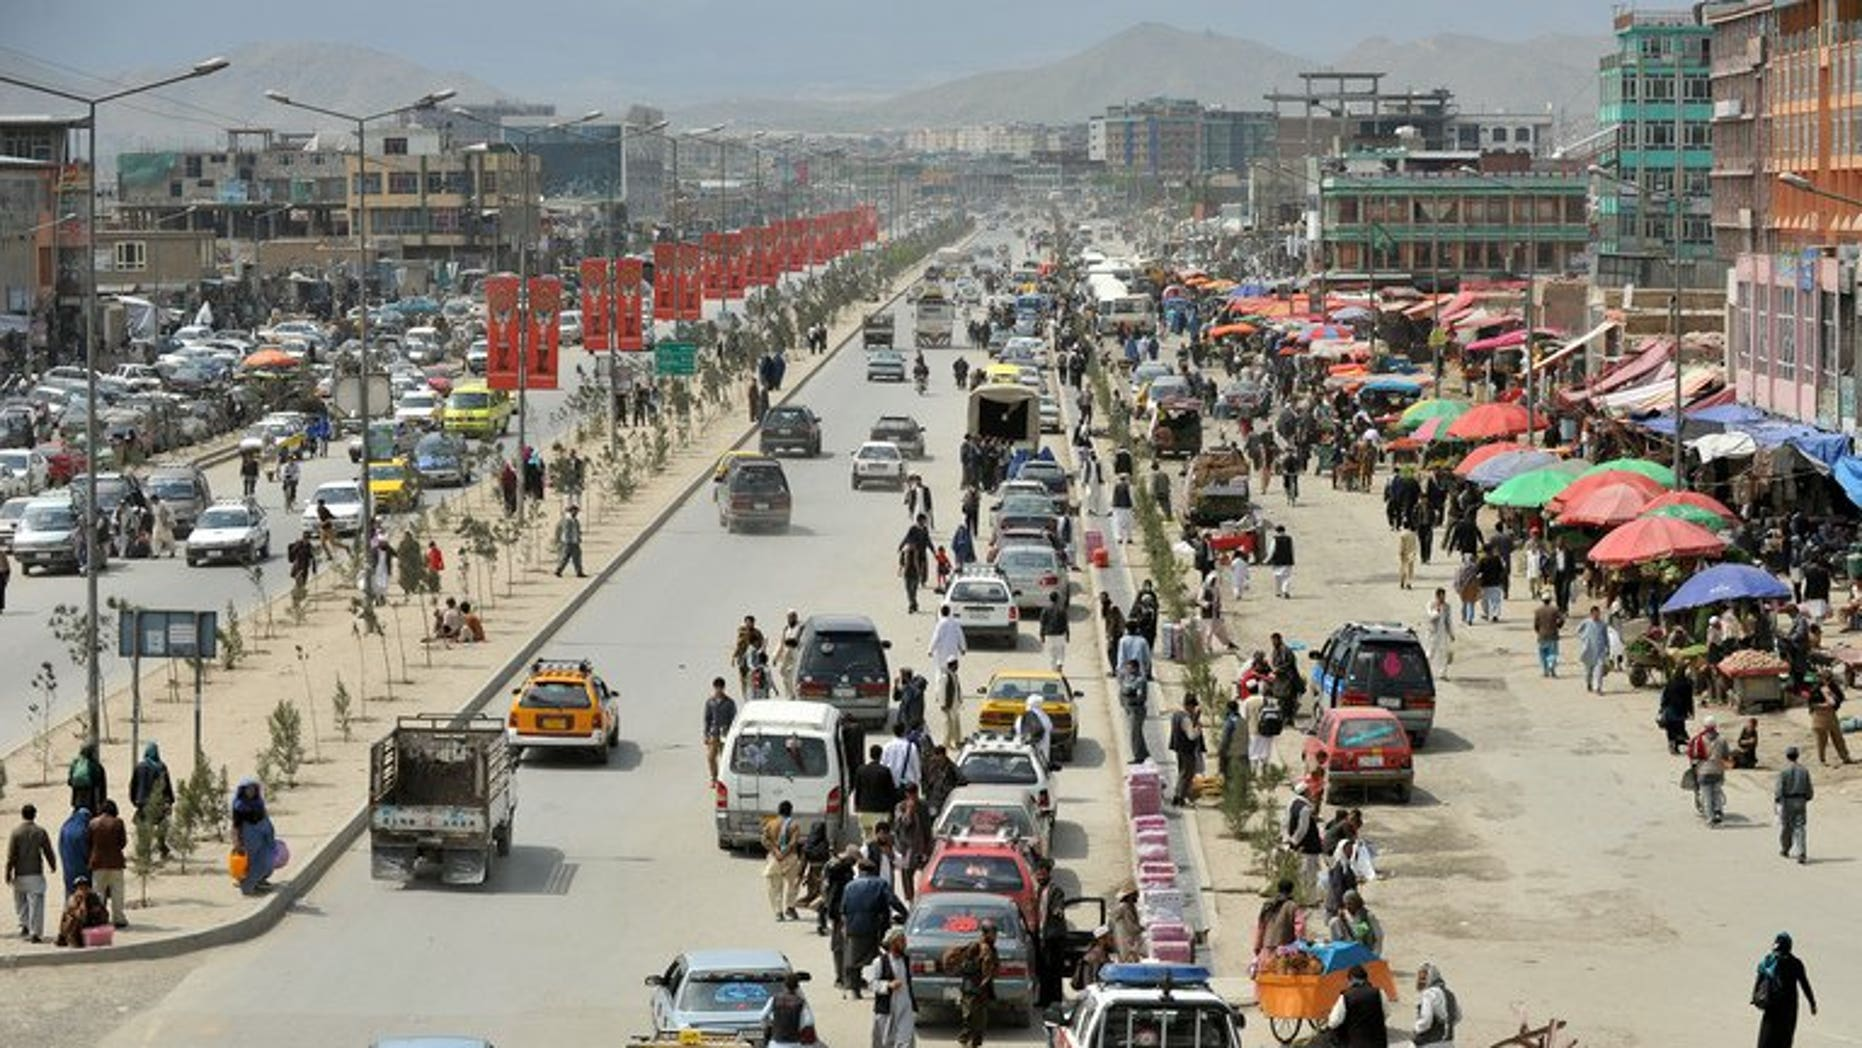 Traffic is seen on a street in the Afghan capital Kabul on April 22, 2013. The Afghan government has unveiled a new package of incentives to attract desperately needed investment to the war-torn country before NATO withdraws next year.